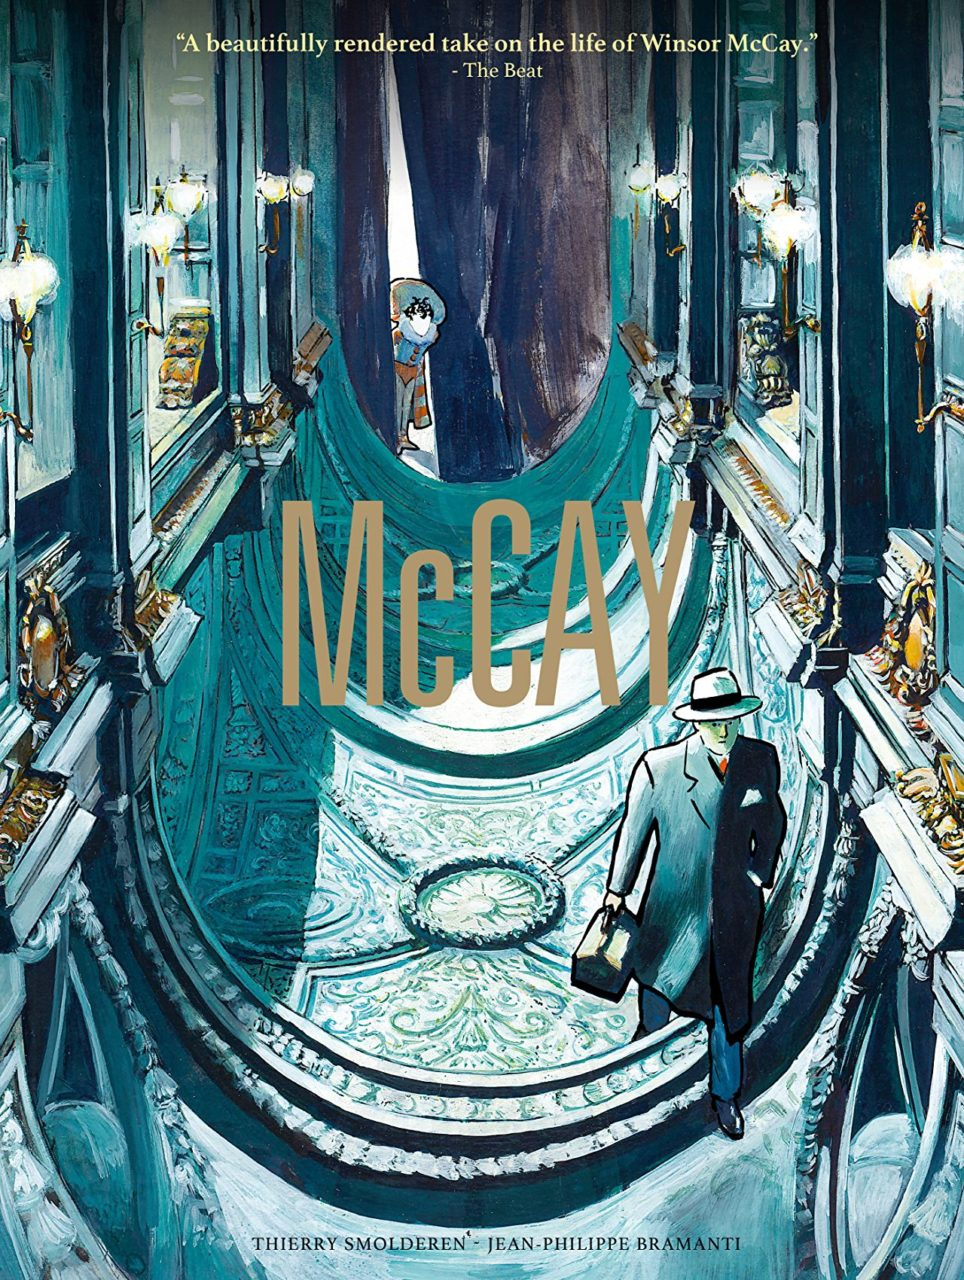 Cover of McCay: A suited, hatted man walks through the upside-down interior of what looks like a cathedral, in muted blue-green with gold accents; in the background a child peeks out at the man from behind a dark curtain